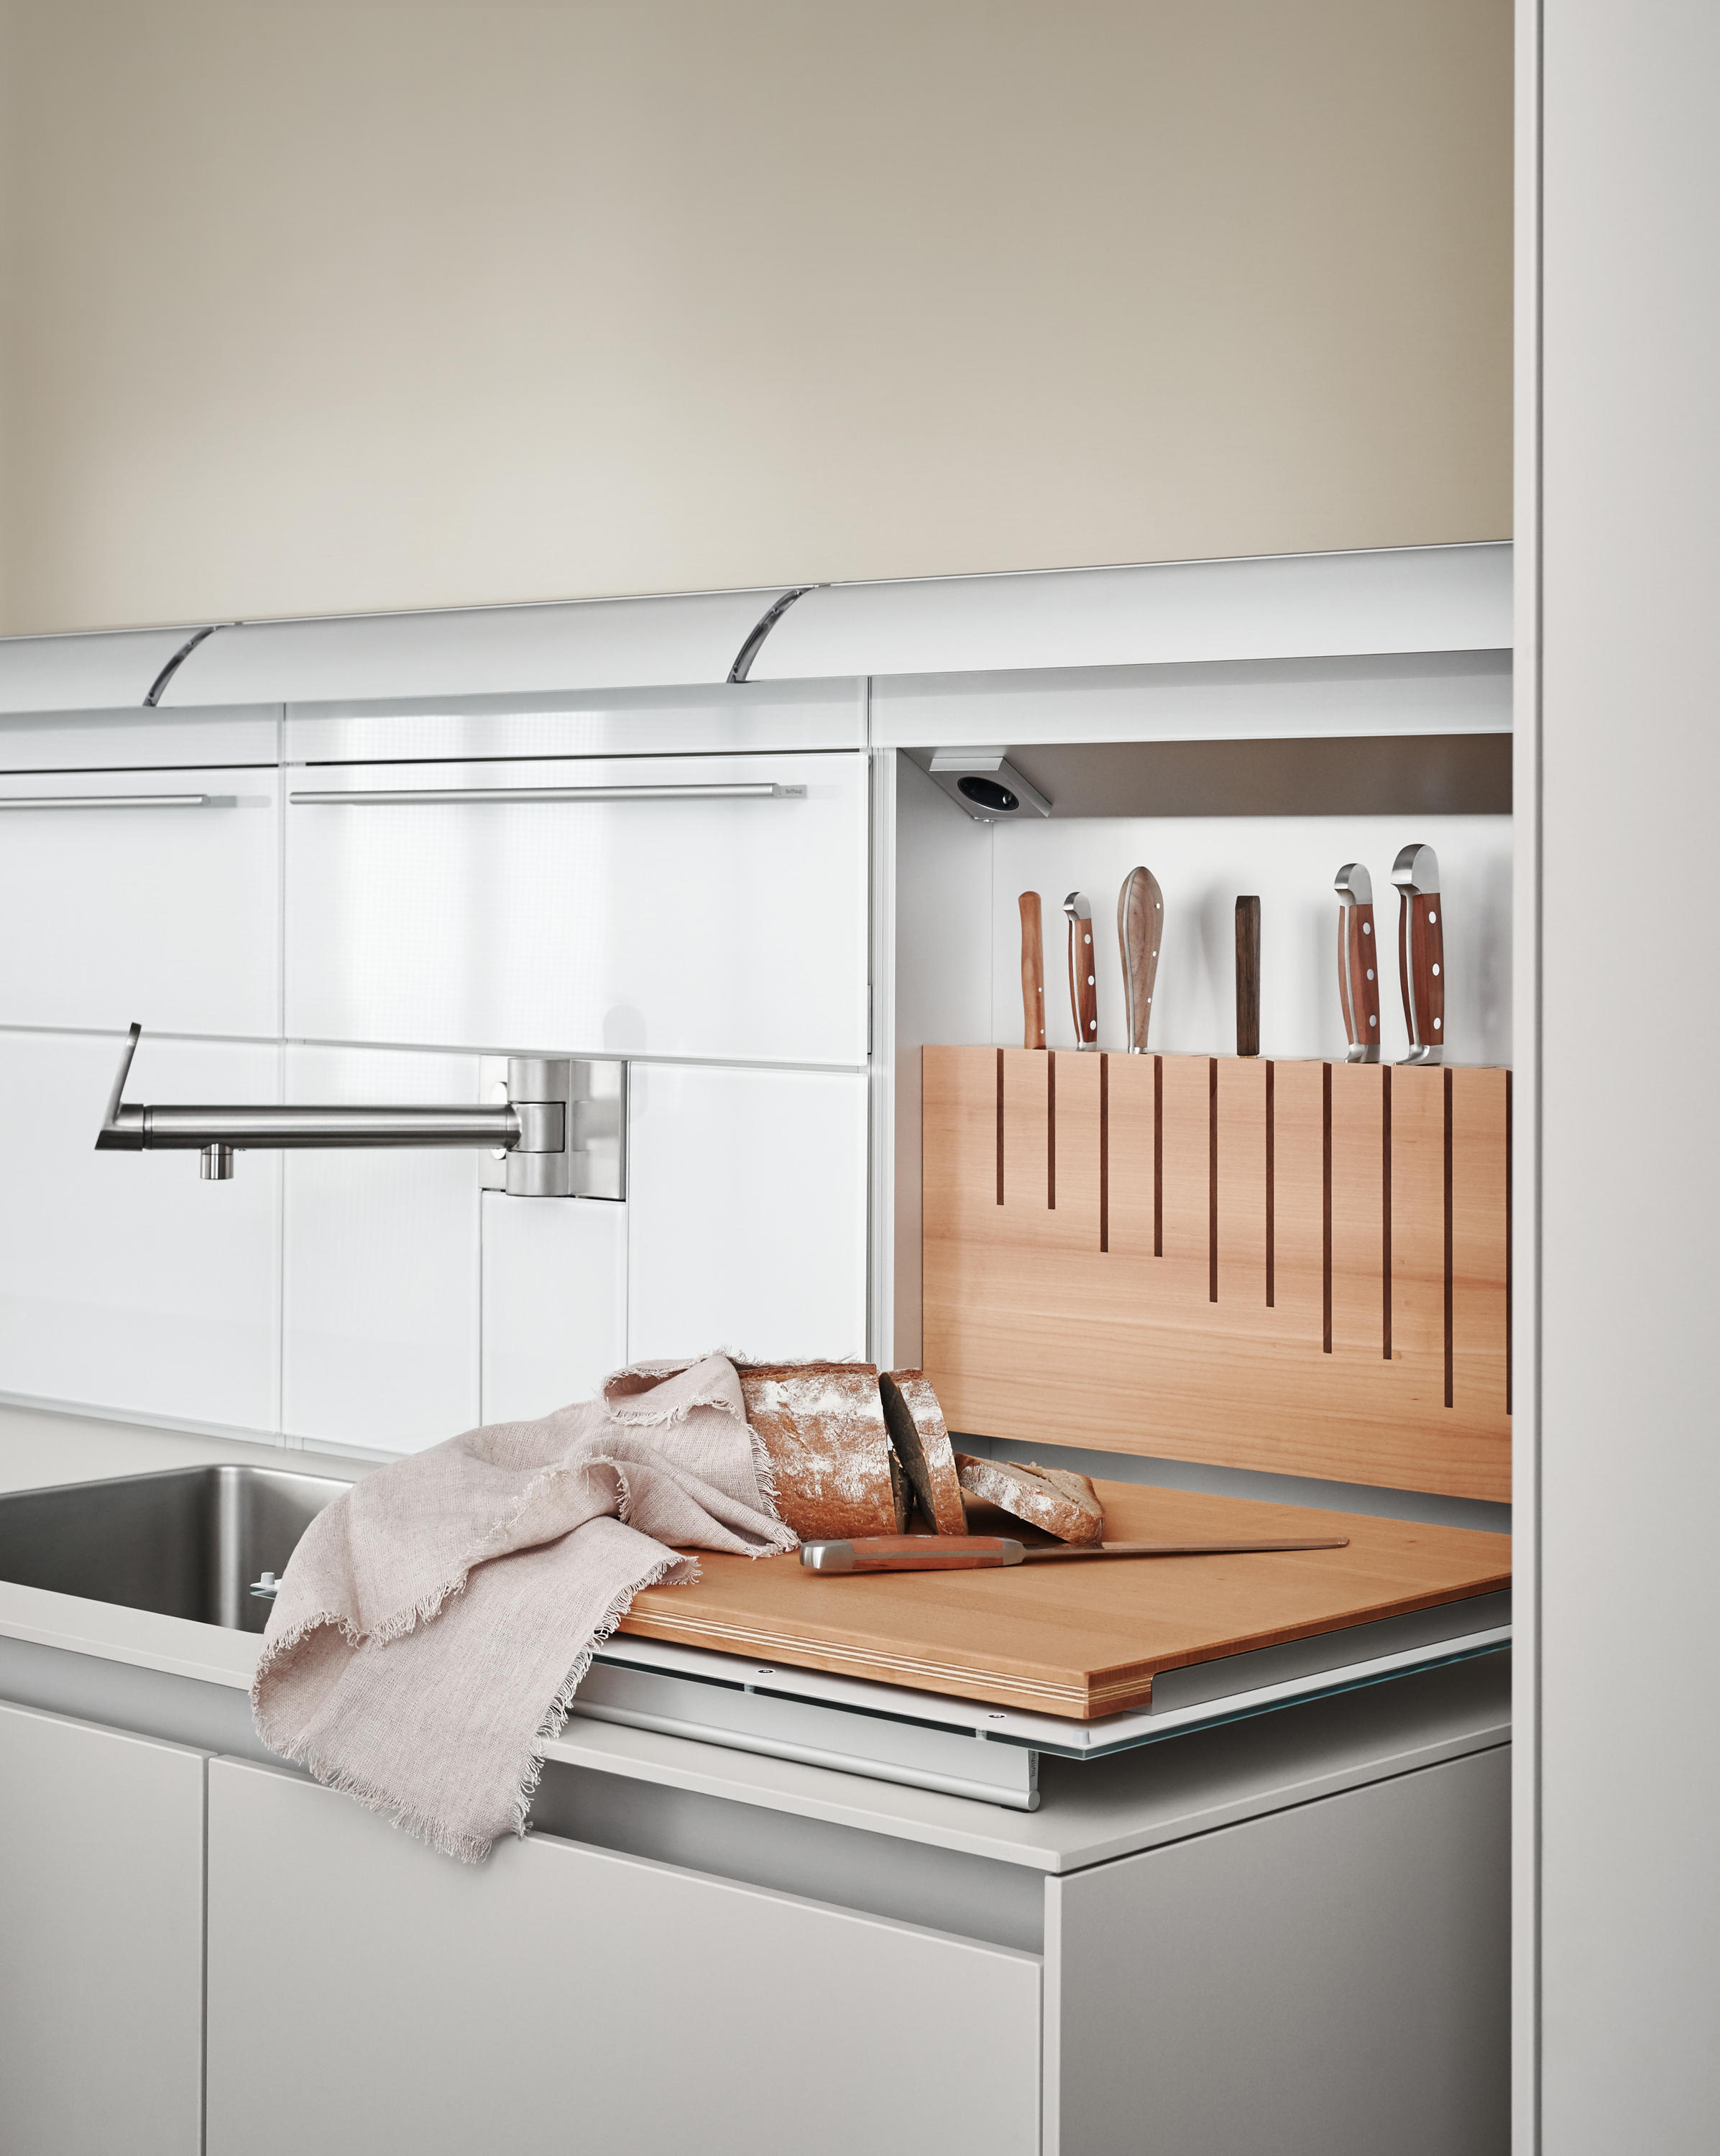 B3 Function Box Kitchen Organization De Bulthaup Architonic # Muebles Bulthaup